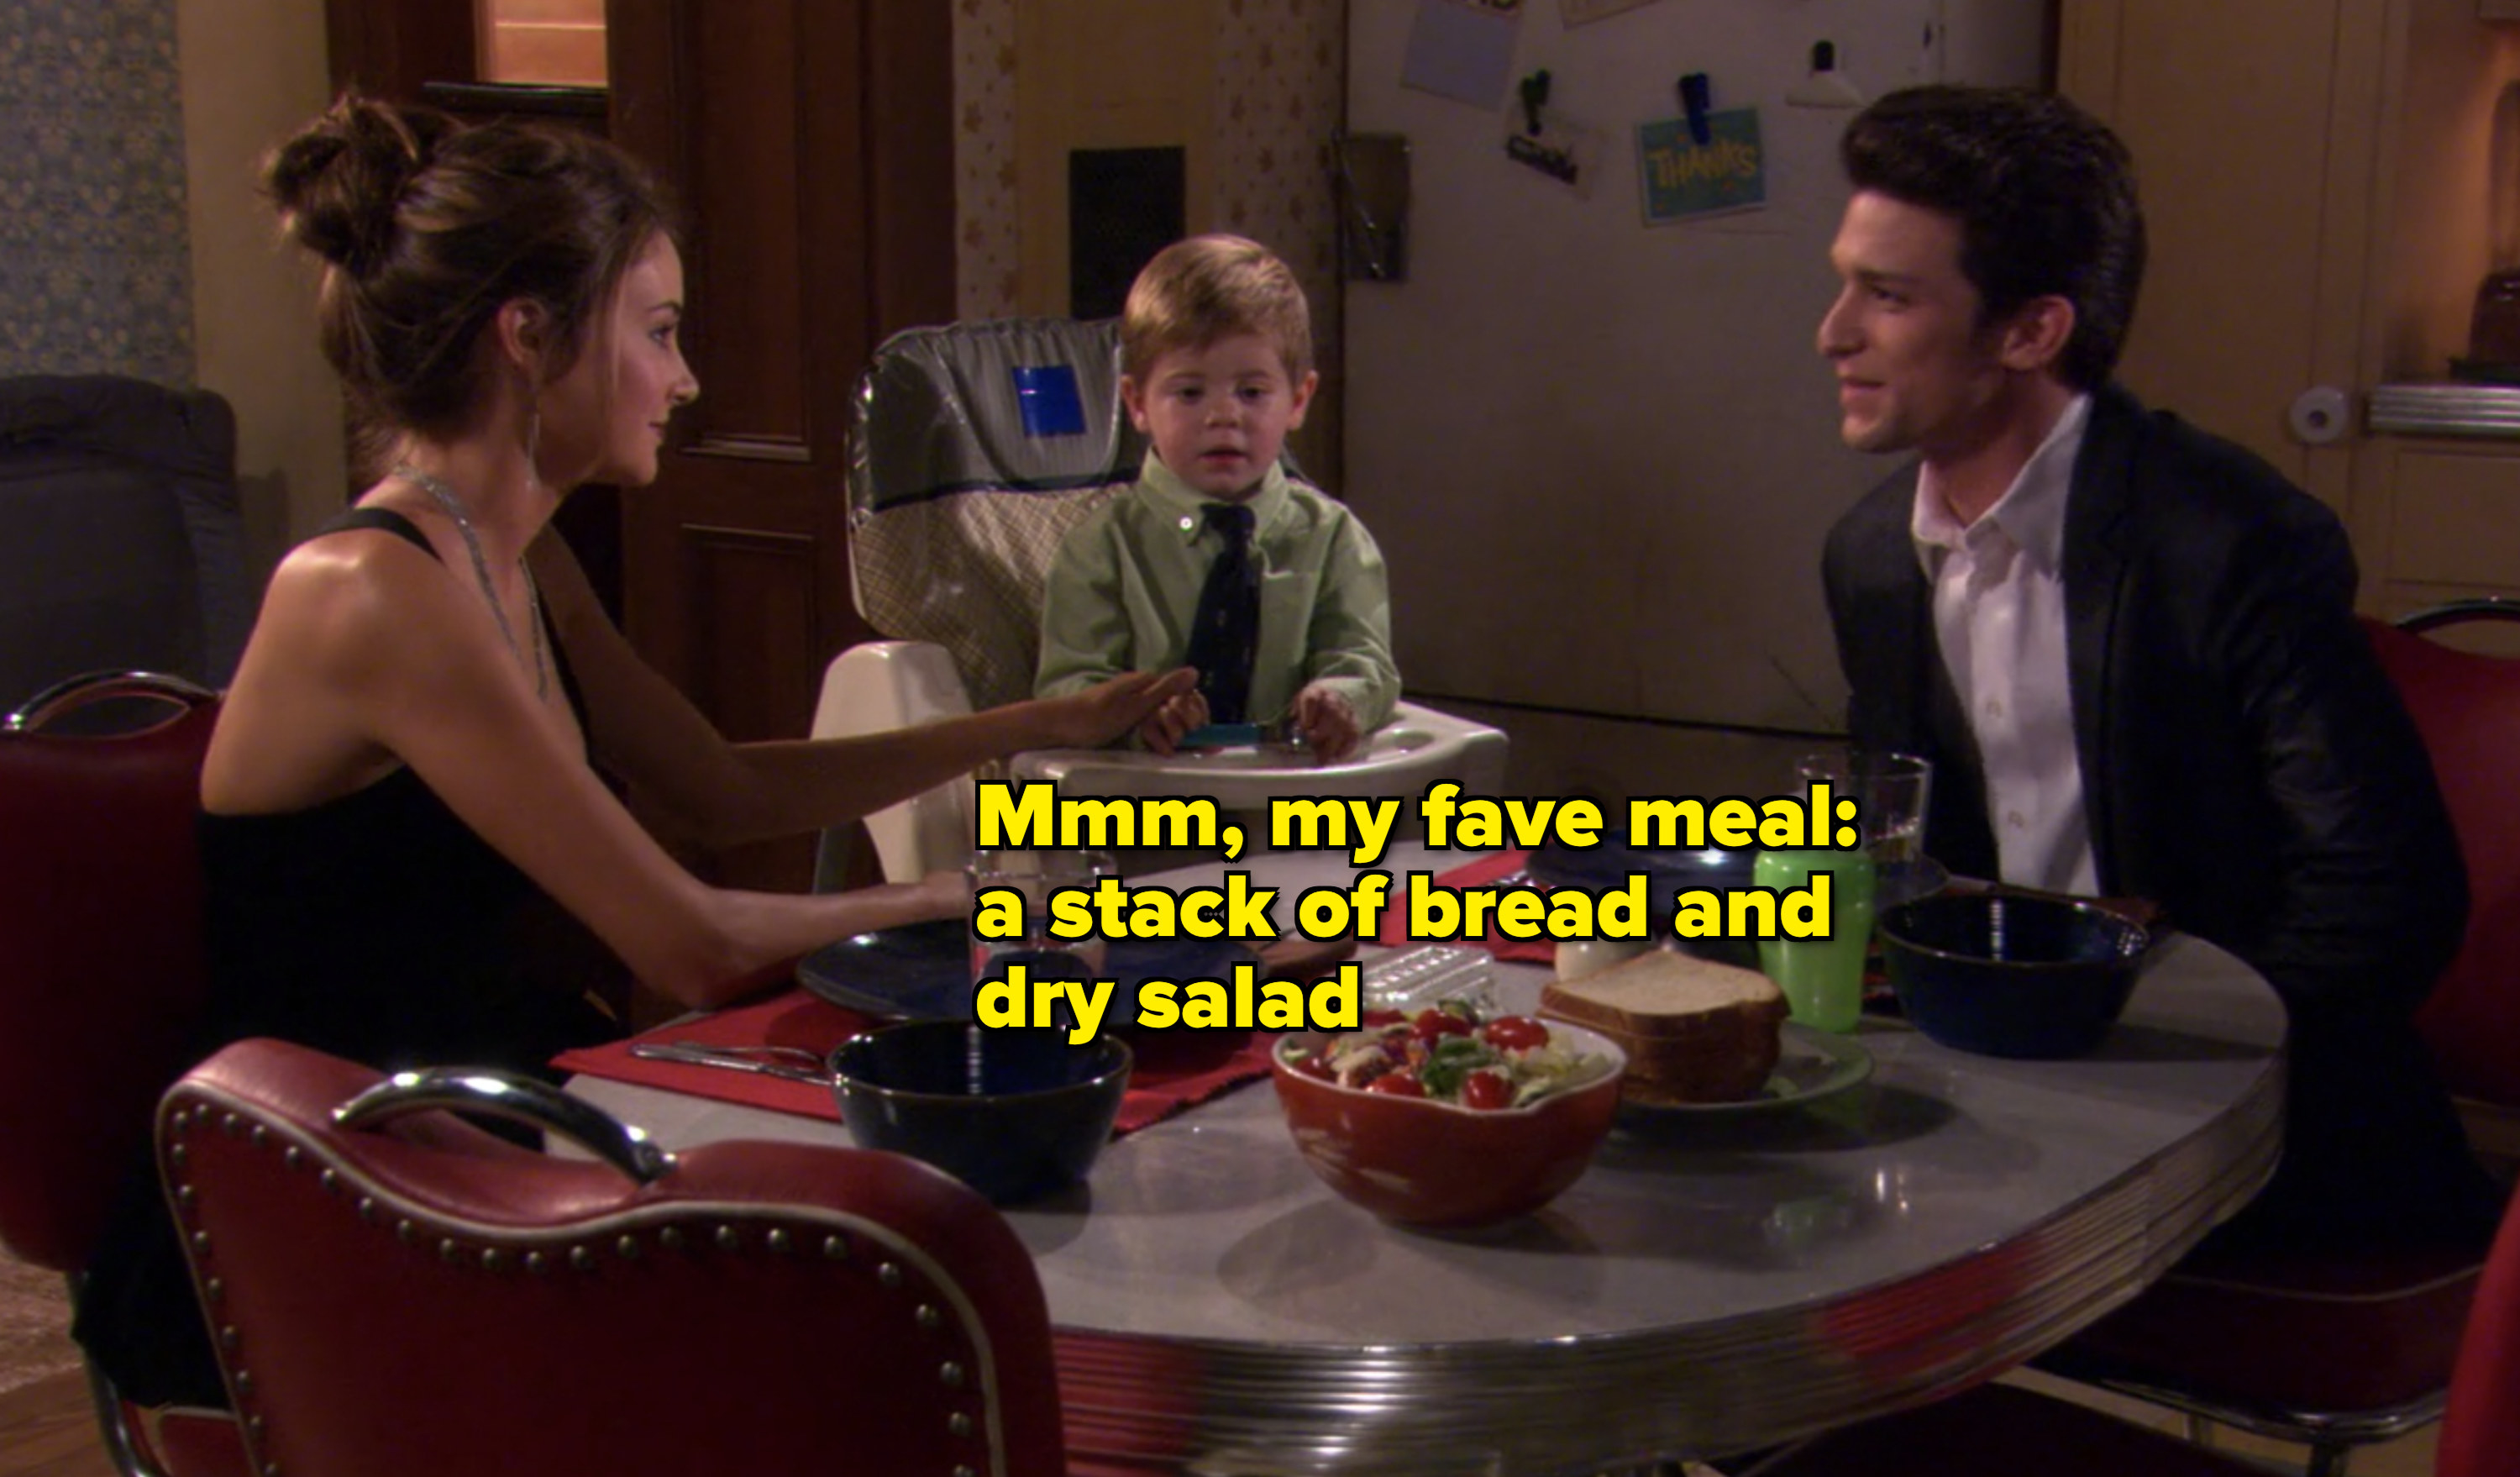 amy, her baby, and ricky having dinner